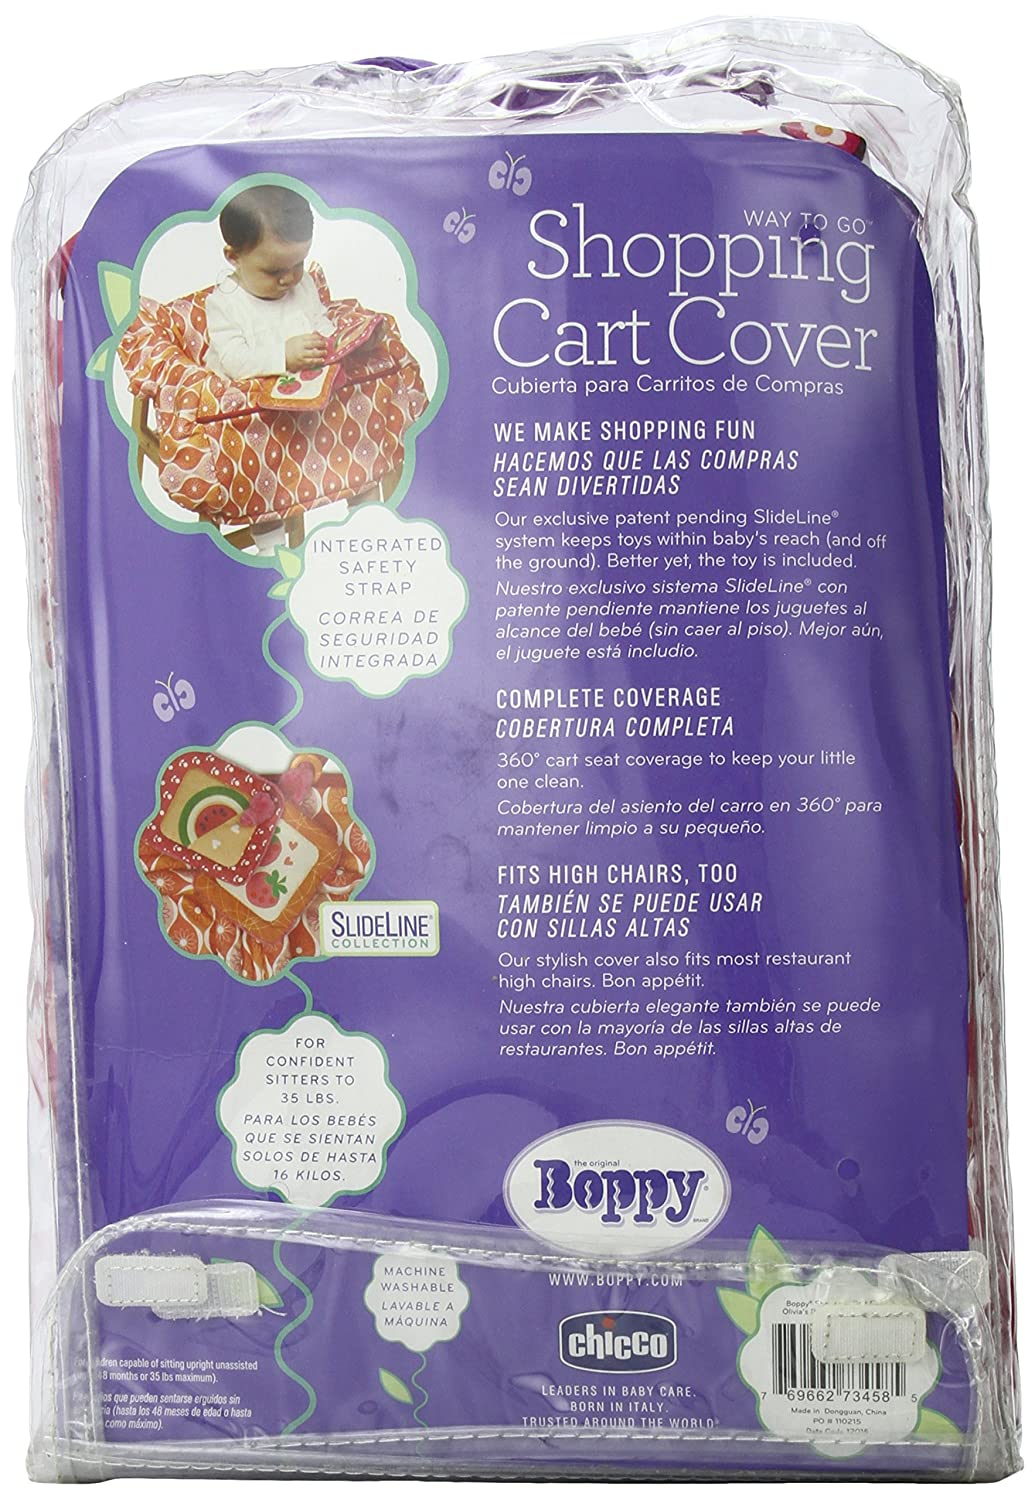 Amazon.com : Boppy Shopping Cart Cover, Olivia (Discontinued by Manufacturer) : Baby Shopping Cart Covers : Baby